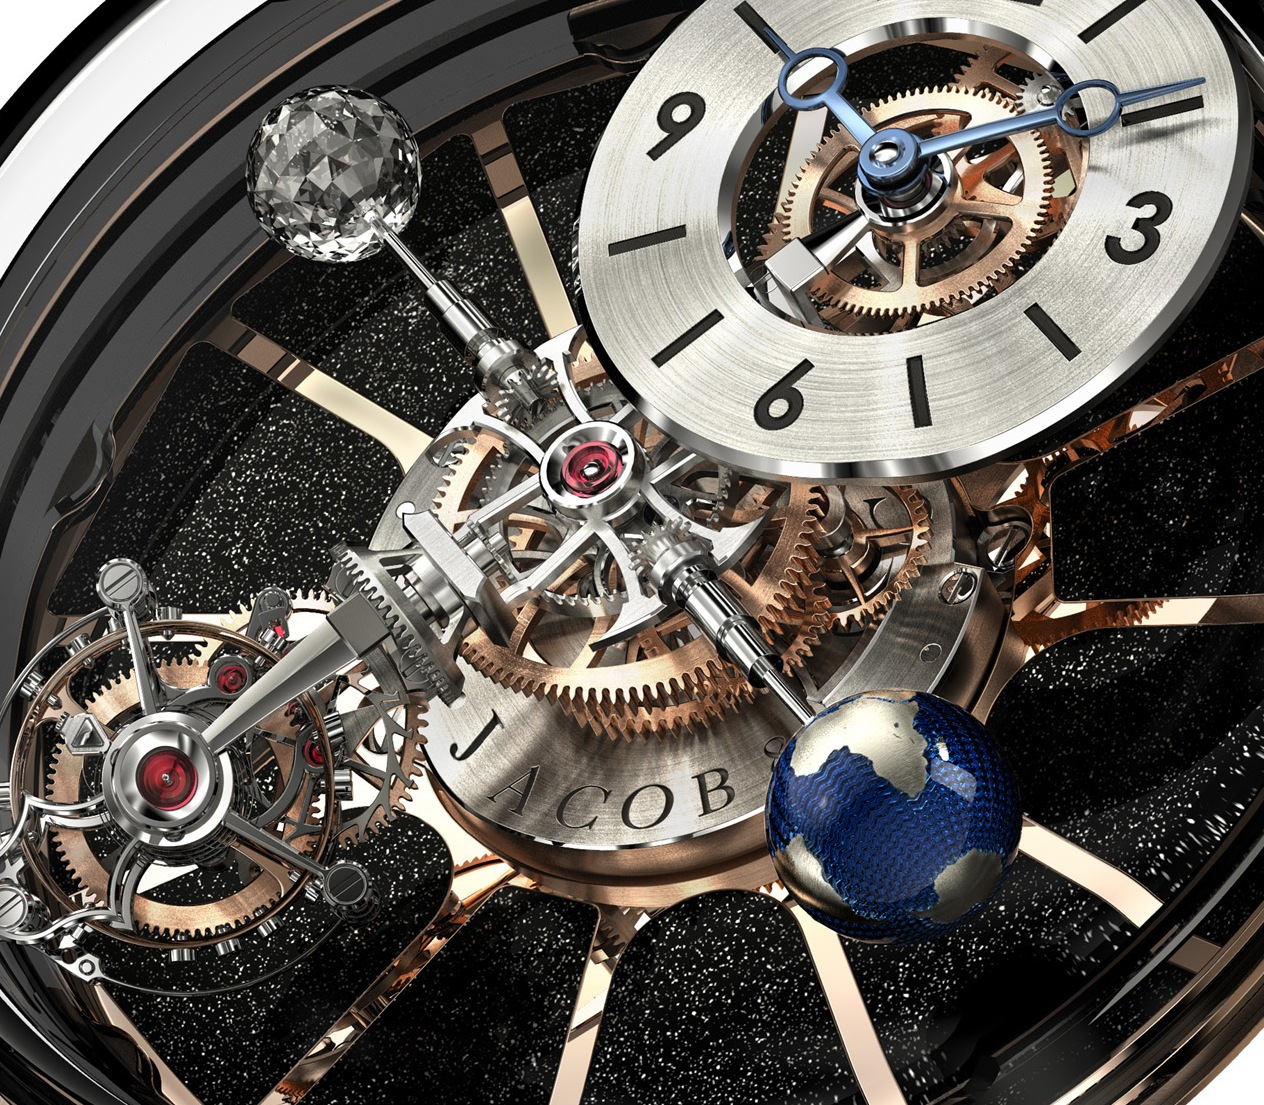 The watch features four axes, each holding a differrentfeature, including the time, tourbillon, moon and earth renditions.